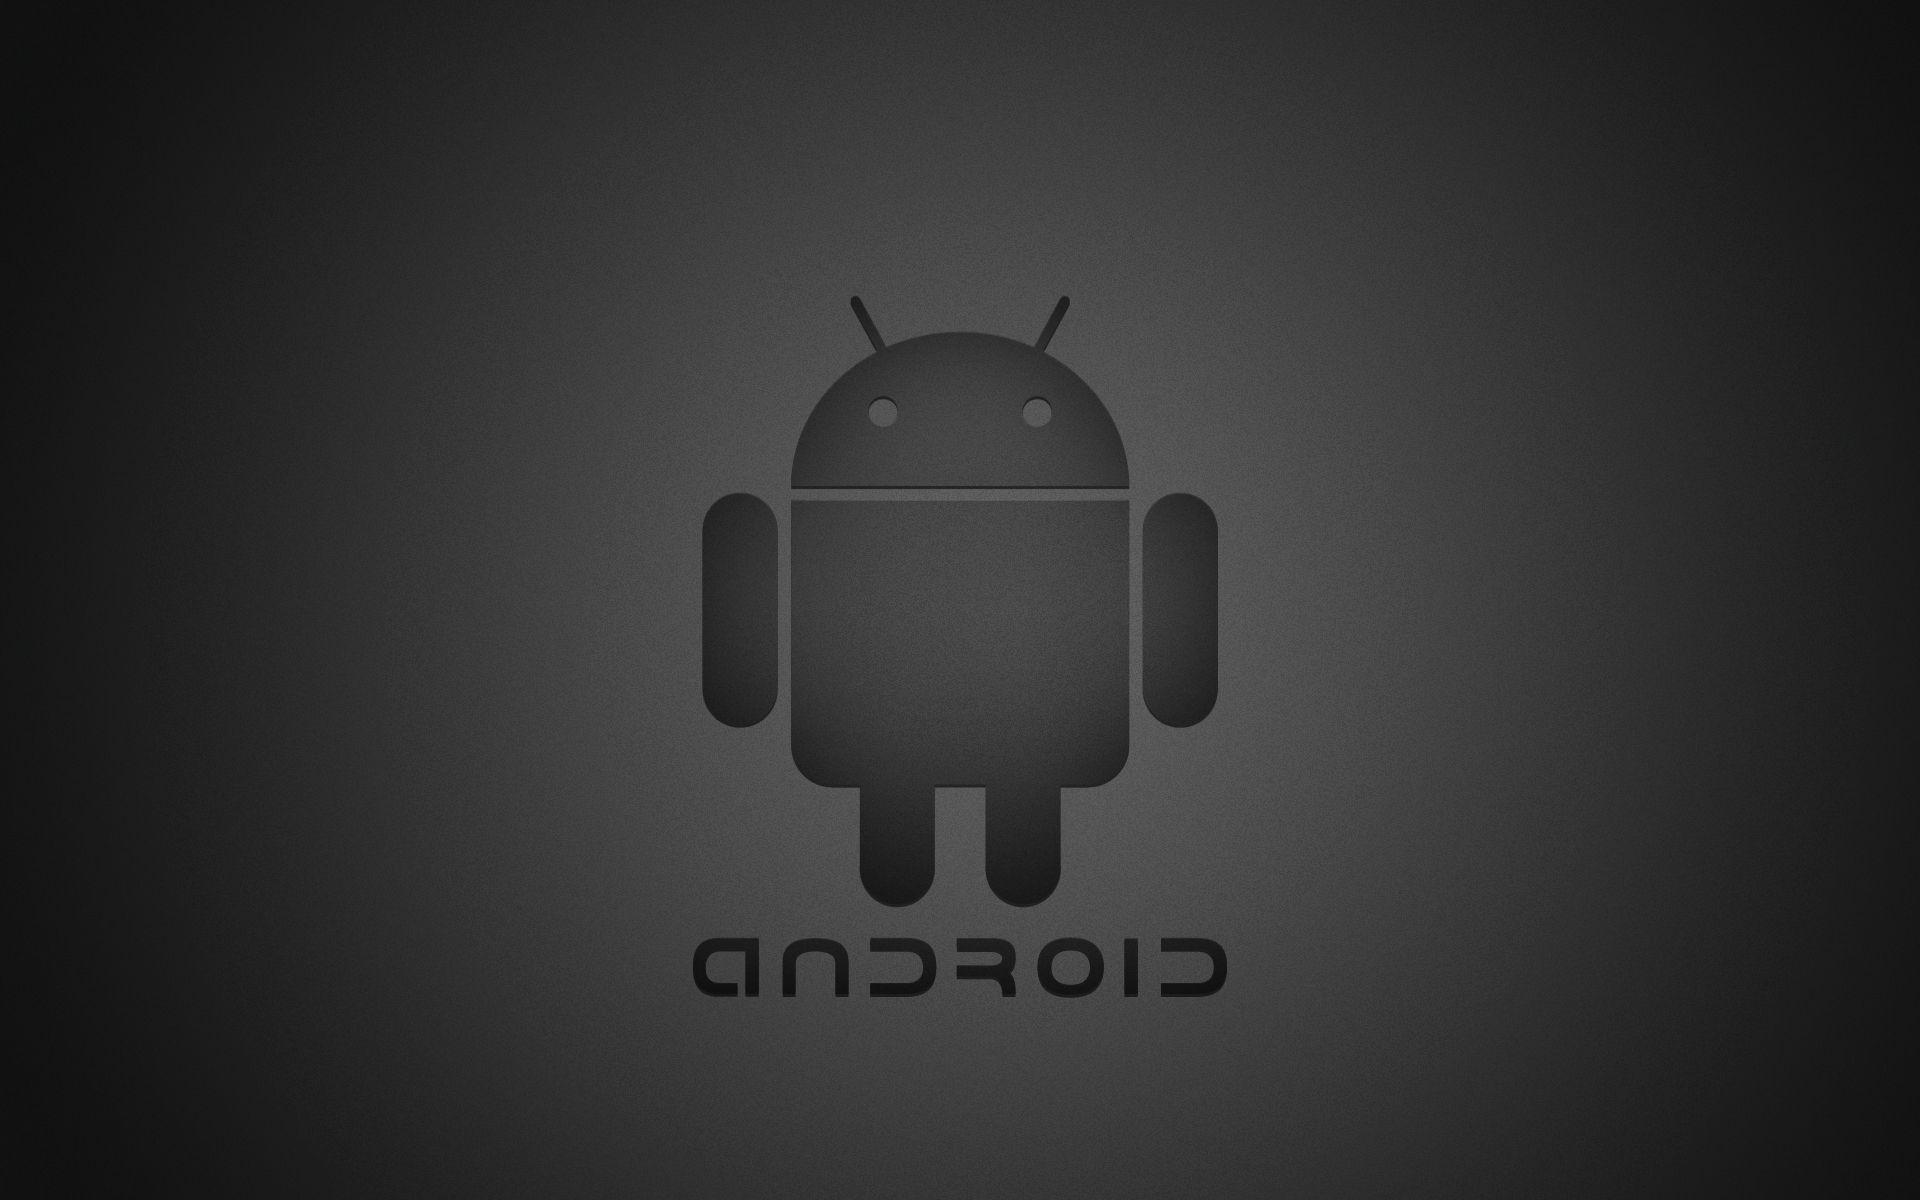 Android wallpaper - Black Android Wallpapers Full Hd Wallpaper Search